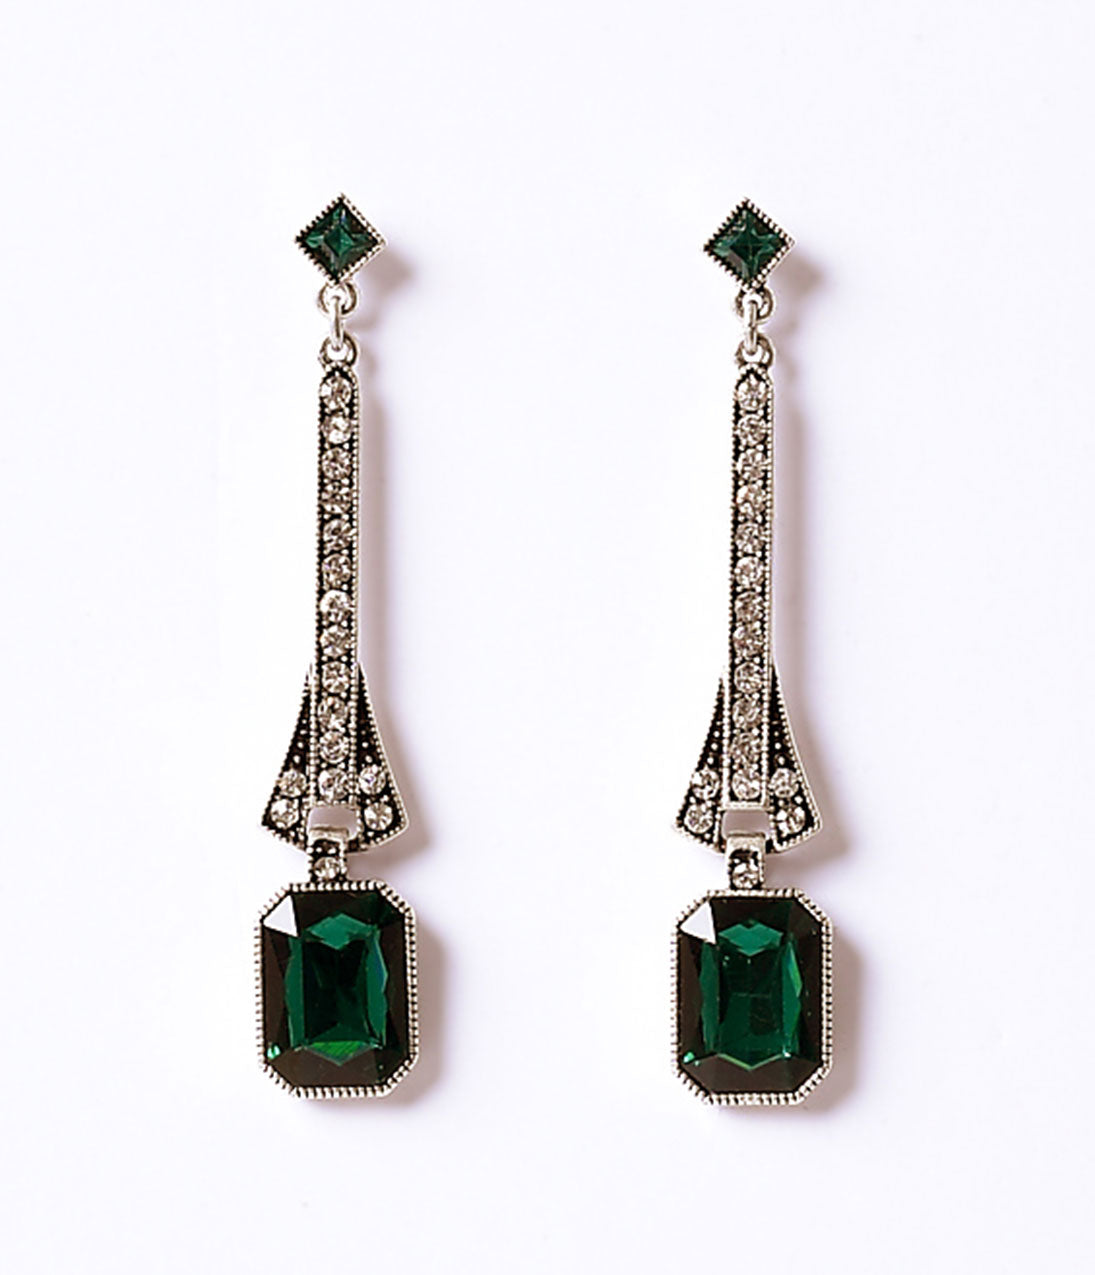 Authentic 1920s Makeup Tutorial Deco Style Emerald  Silver Crystal Drop Post Earrings $28.00 AT vintagedancer.com